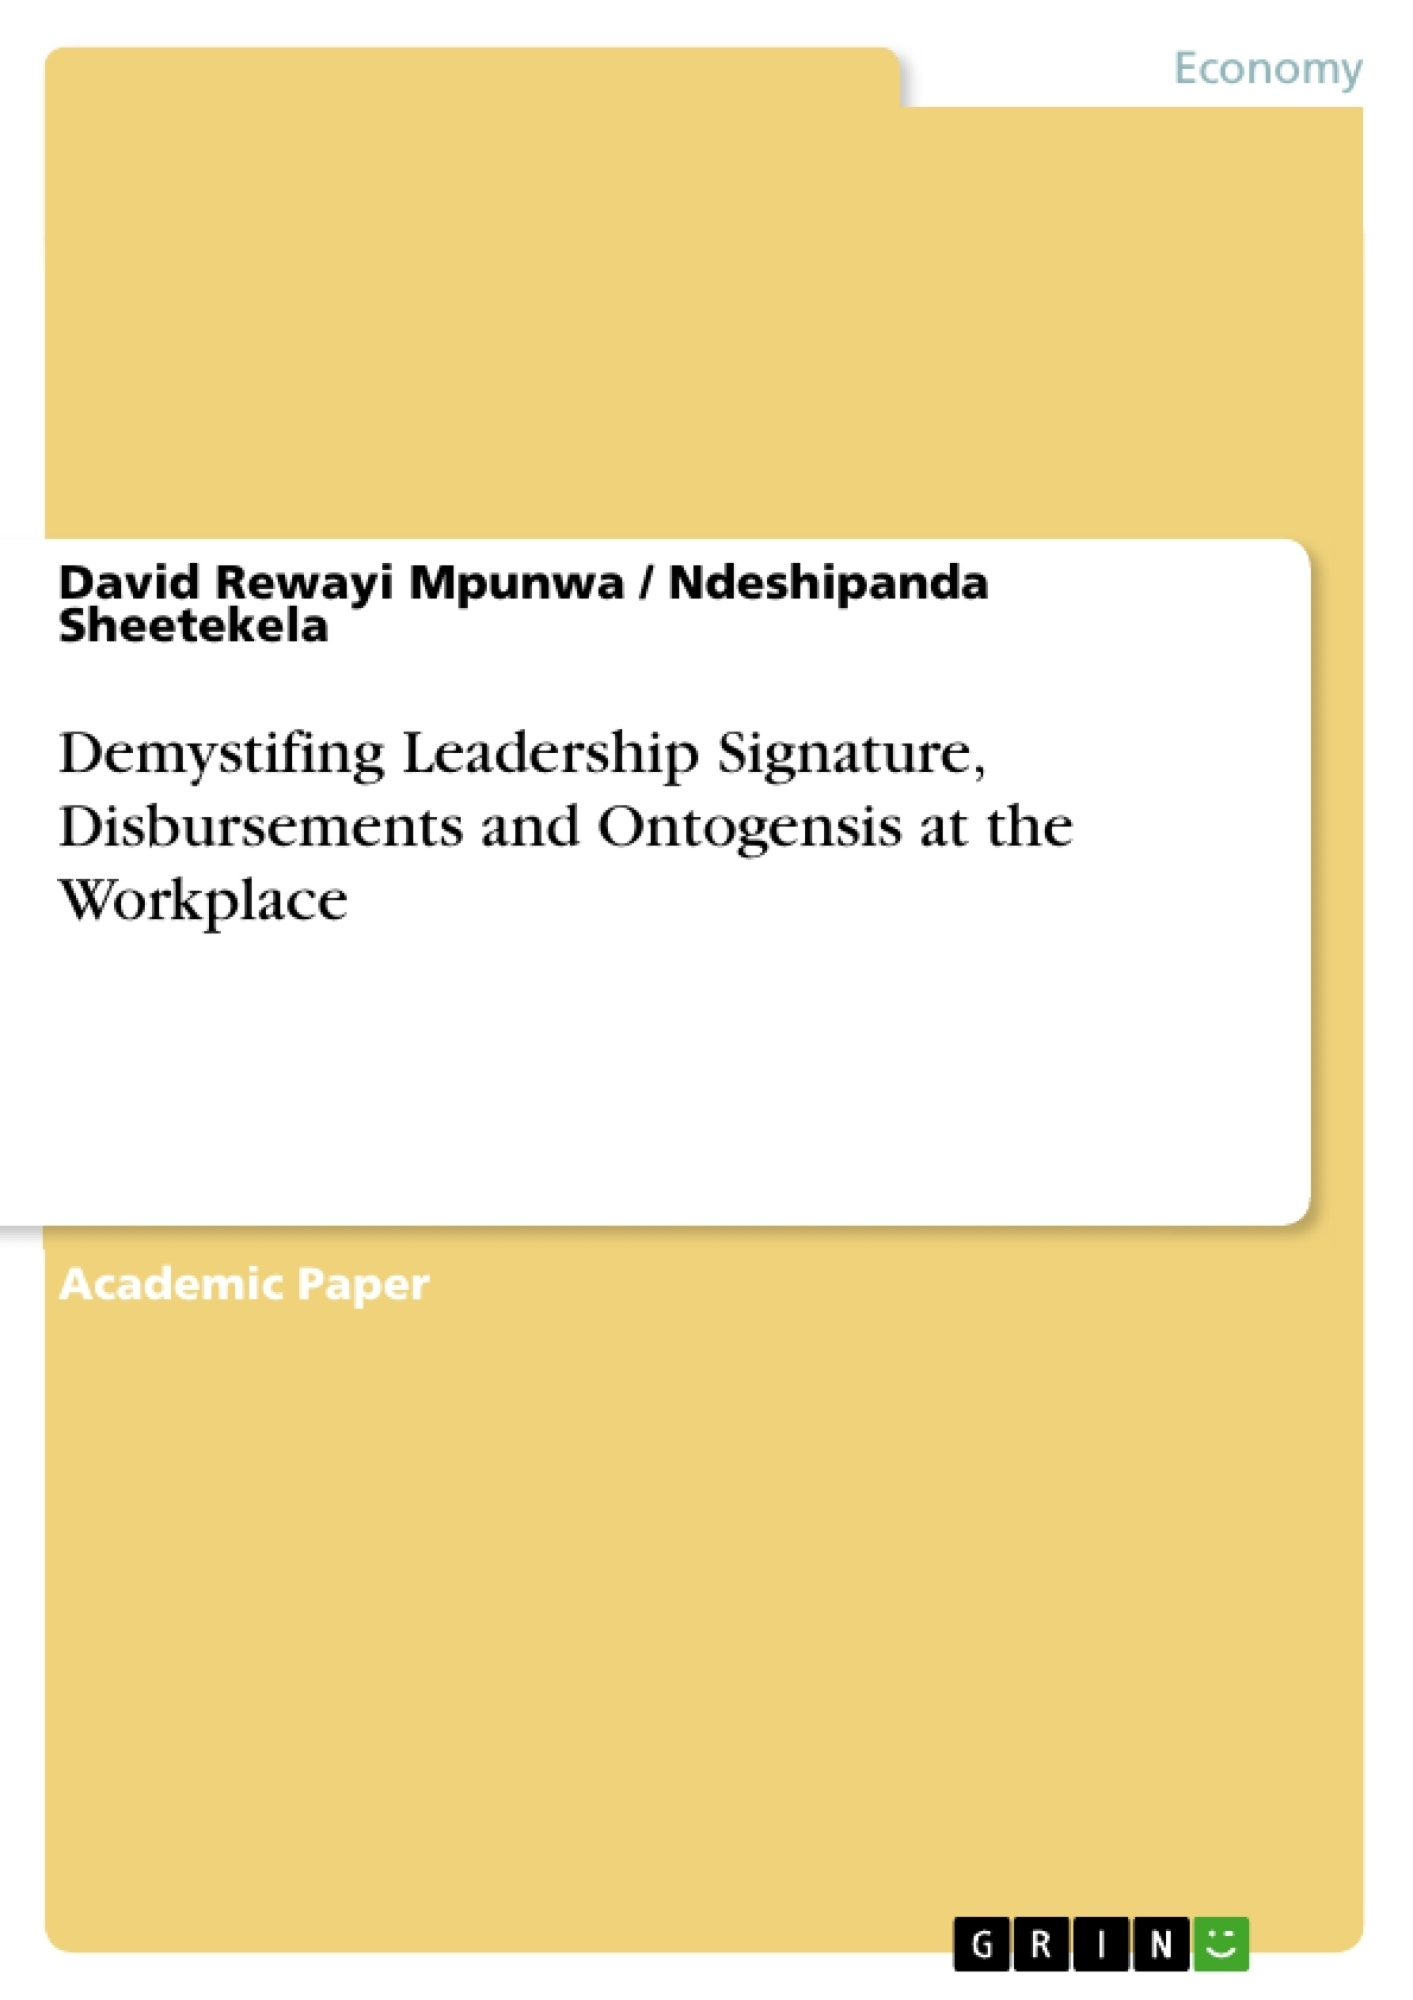 Title: Demystifing Leadership Signature, Disbursements and Ontogensis at the Workplace